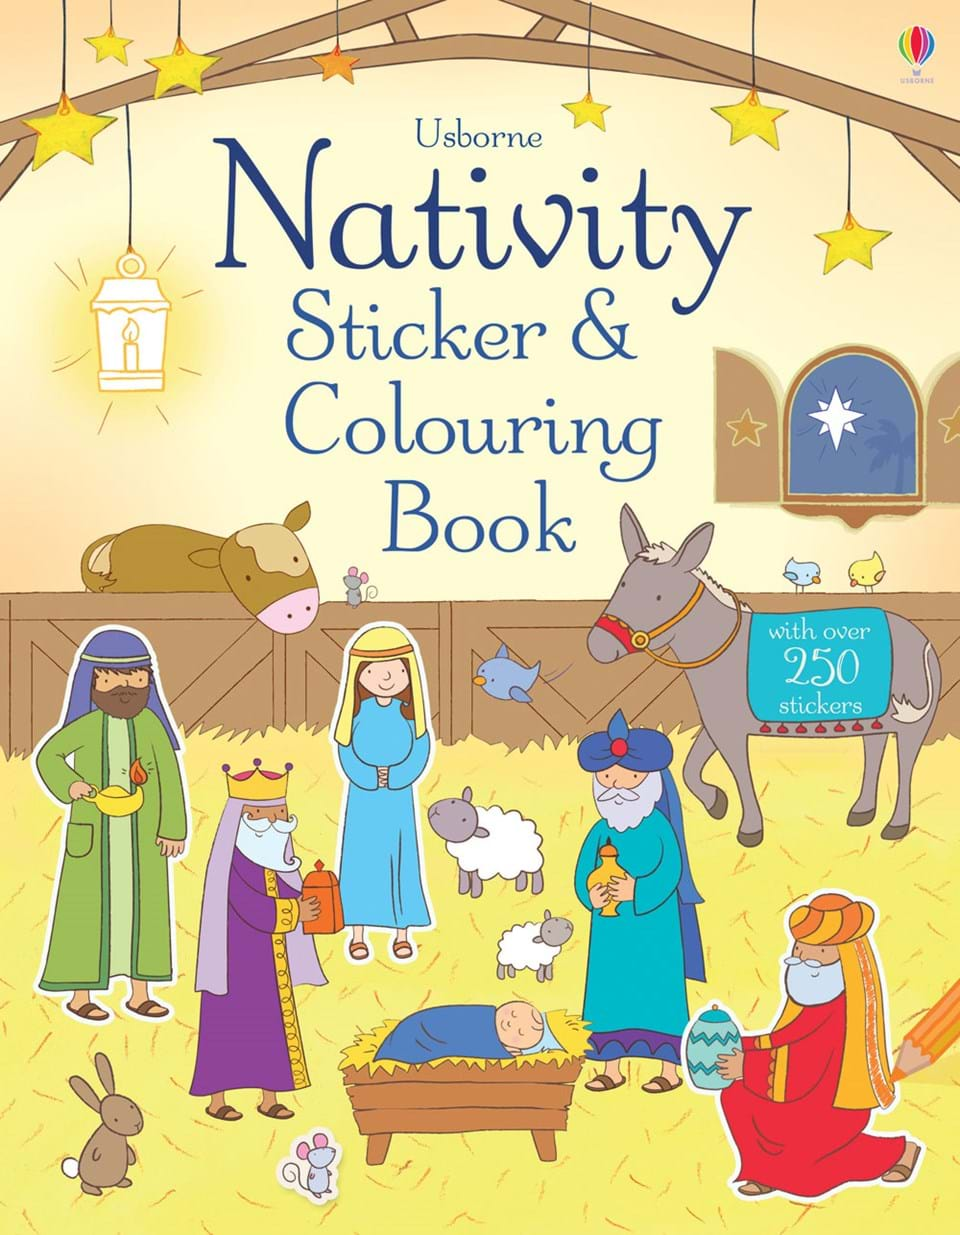 nativity sticker and colouring book - Colouring Books For Children